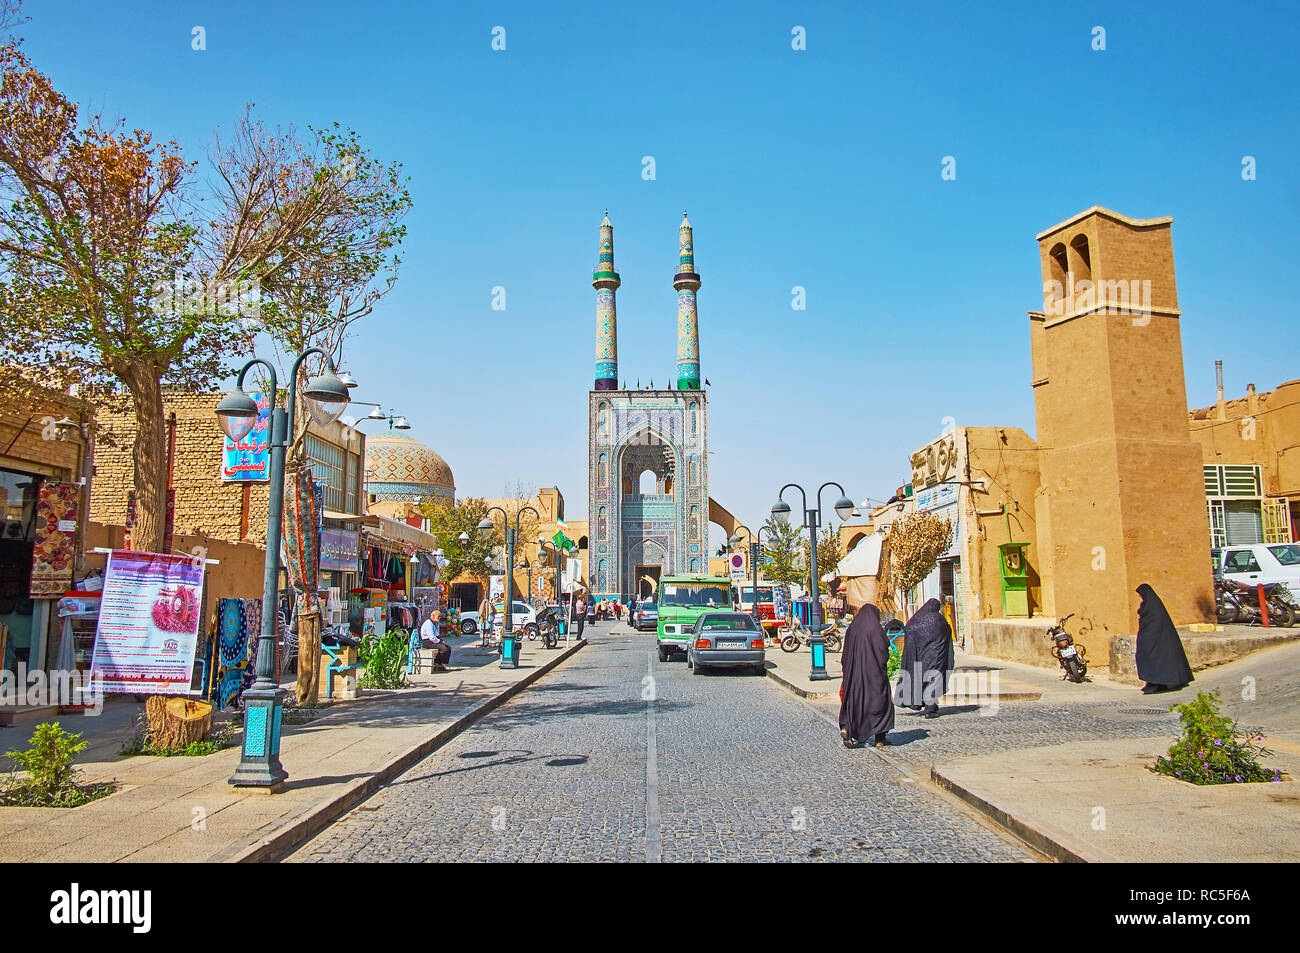 YAZD, IRAN - OCTOBER 18, 2017:  Masjid Jame is one of the main tourist streets, leading to the notable city landmark - the Friday Mosque, on October 1 Stock Photo